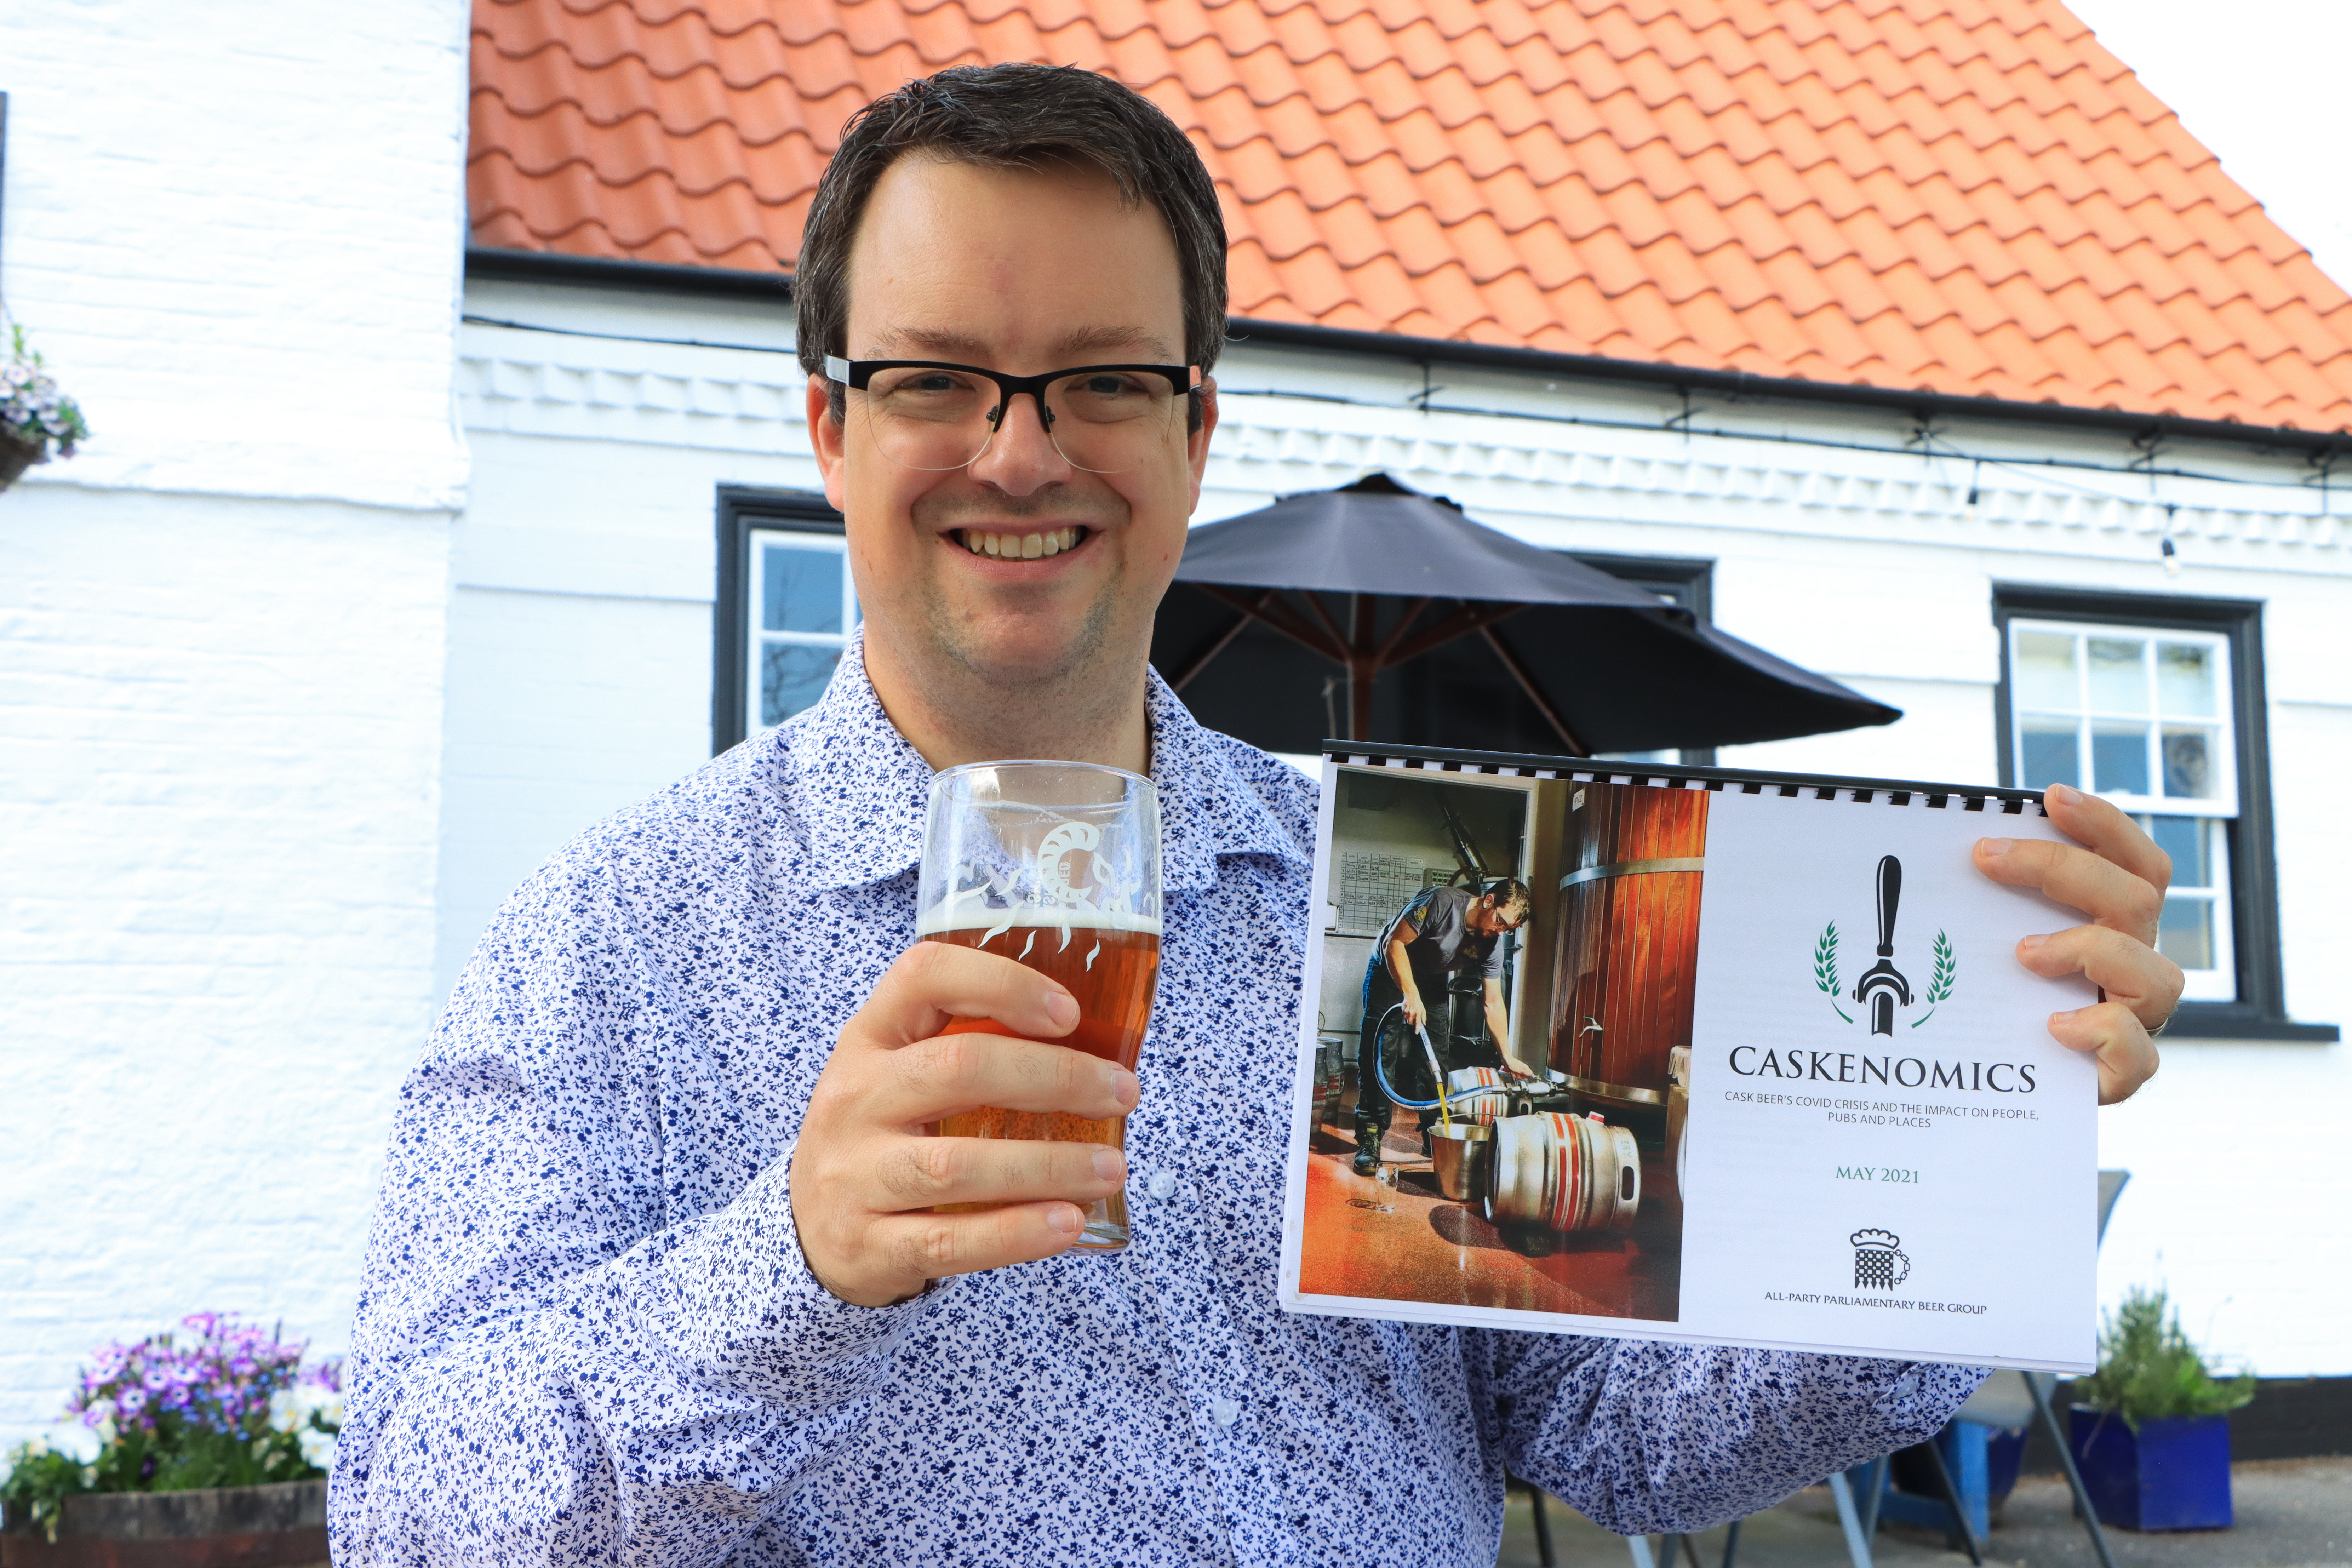 Mike Wood MP, Chairman of the APPBG for beer - new Caskenomics report 2021